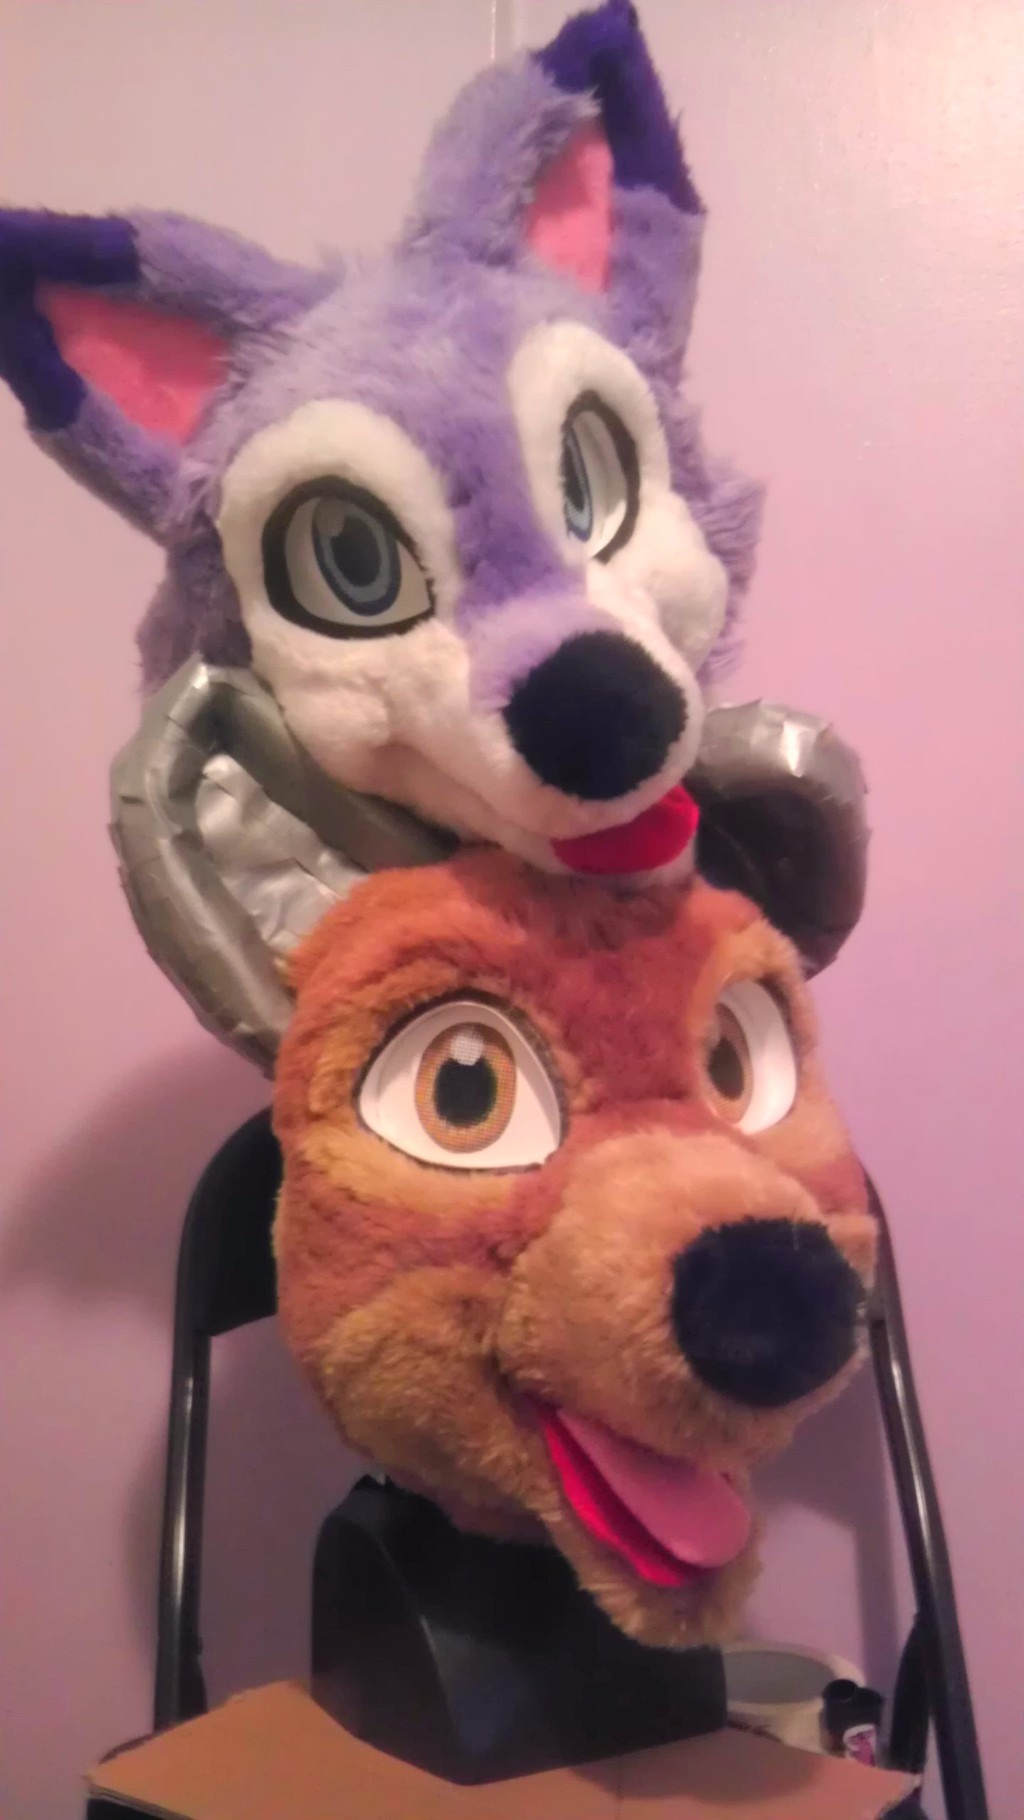 Most recent image: Head rest wip